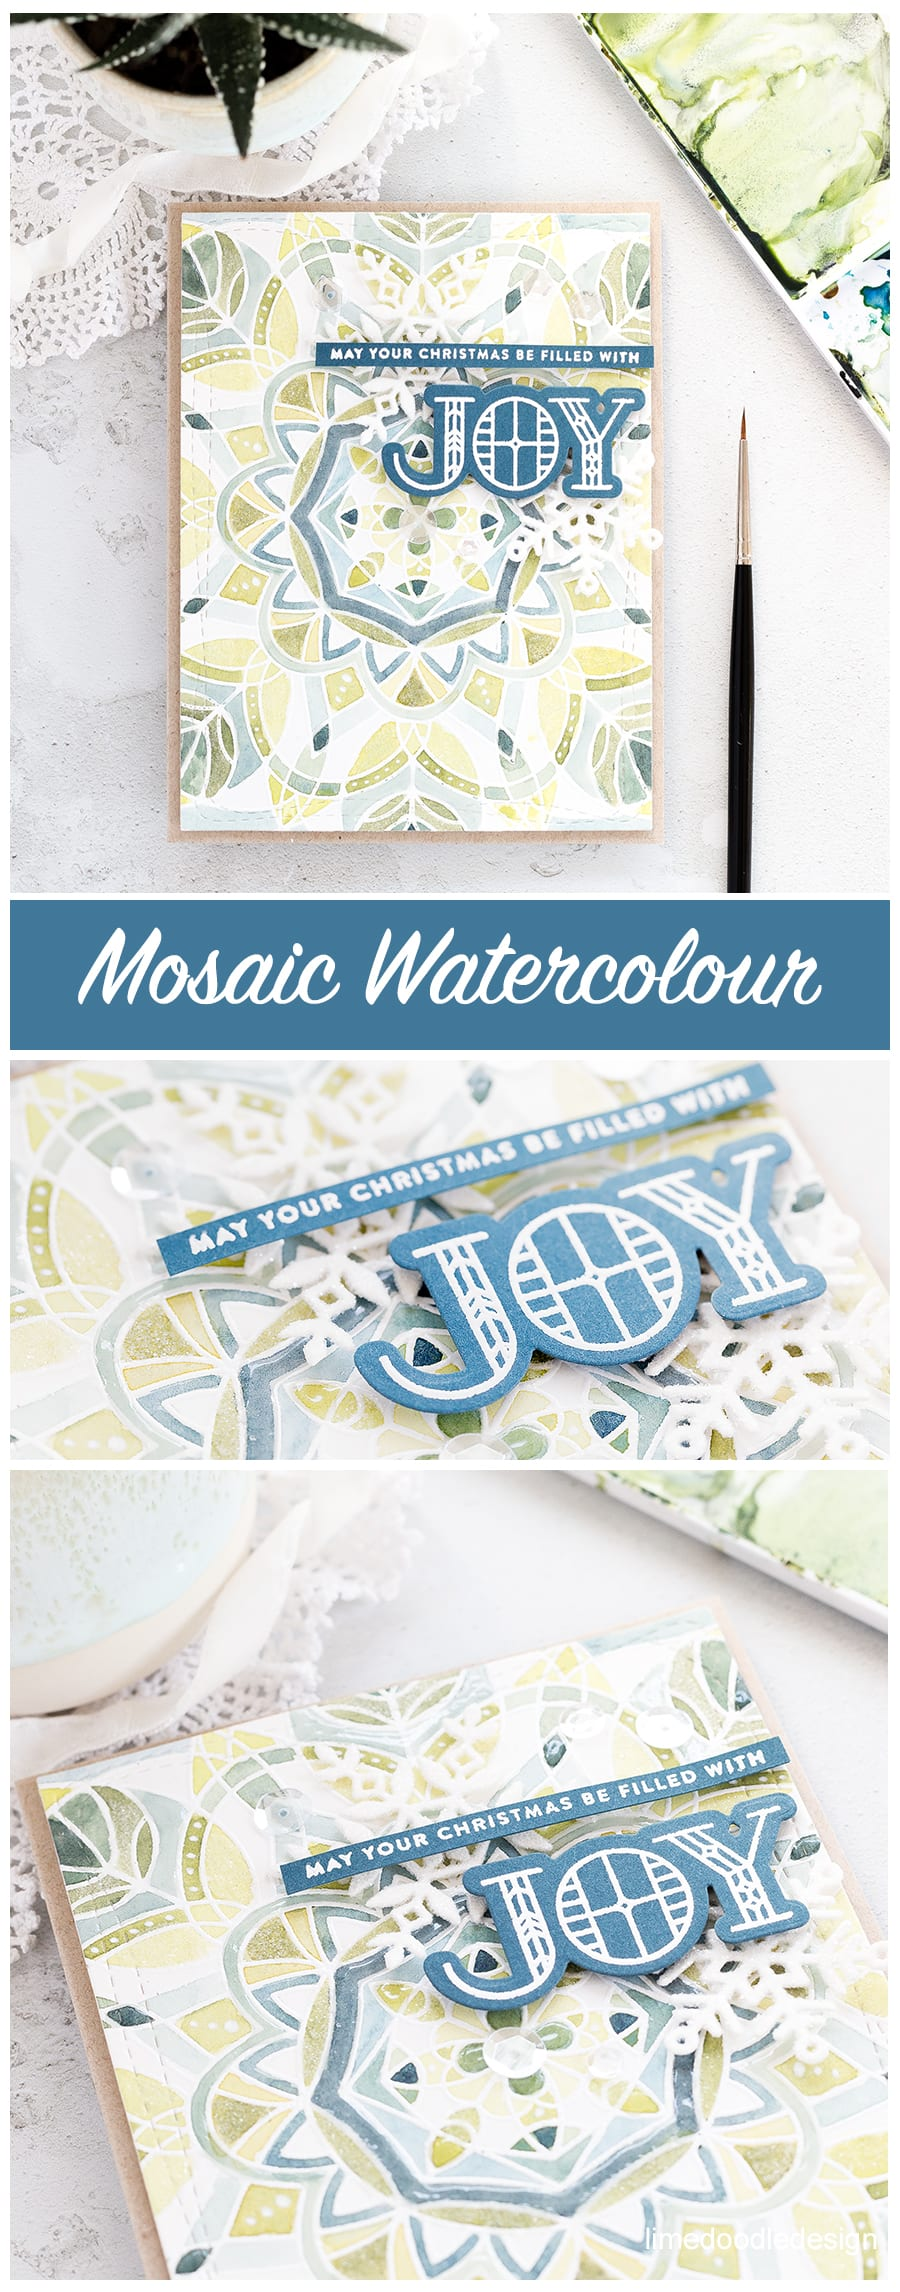 Mosaic/spotlight watercolouring a soft and elegant background for this handmade Christmas card by Debby Hughes using the Centre Cut Kaleidoscope Bakcground and Stained Glass Greetings set from Simon Says Stamp. Find out more here: http://limedoodledesign.com/2017/11/mosaic-watercolour/